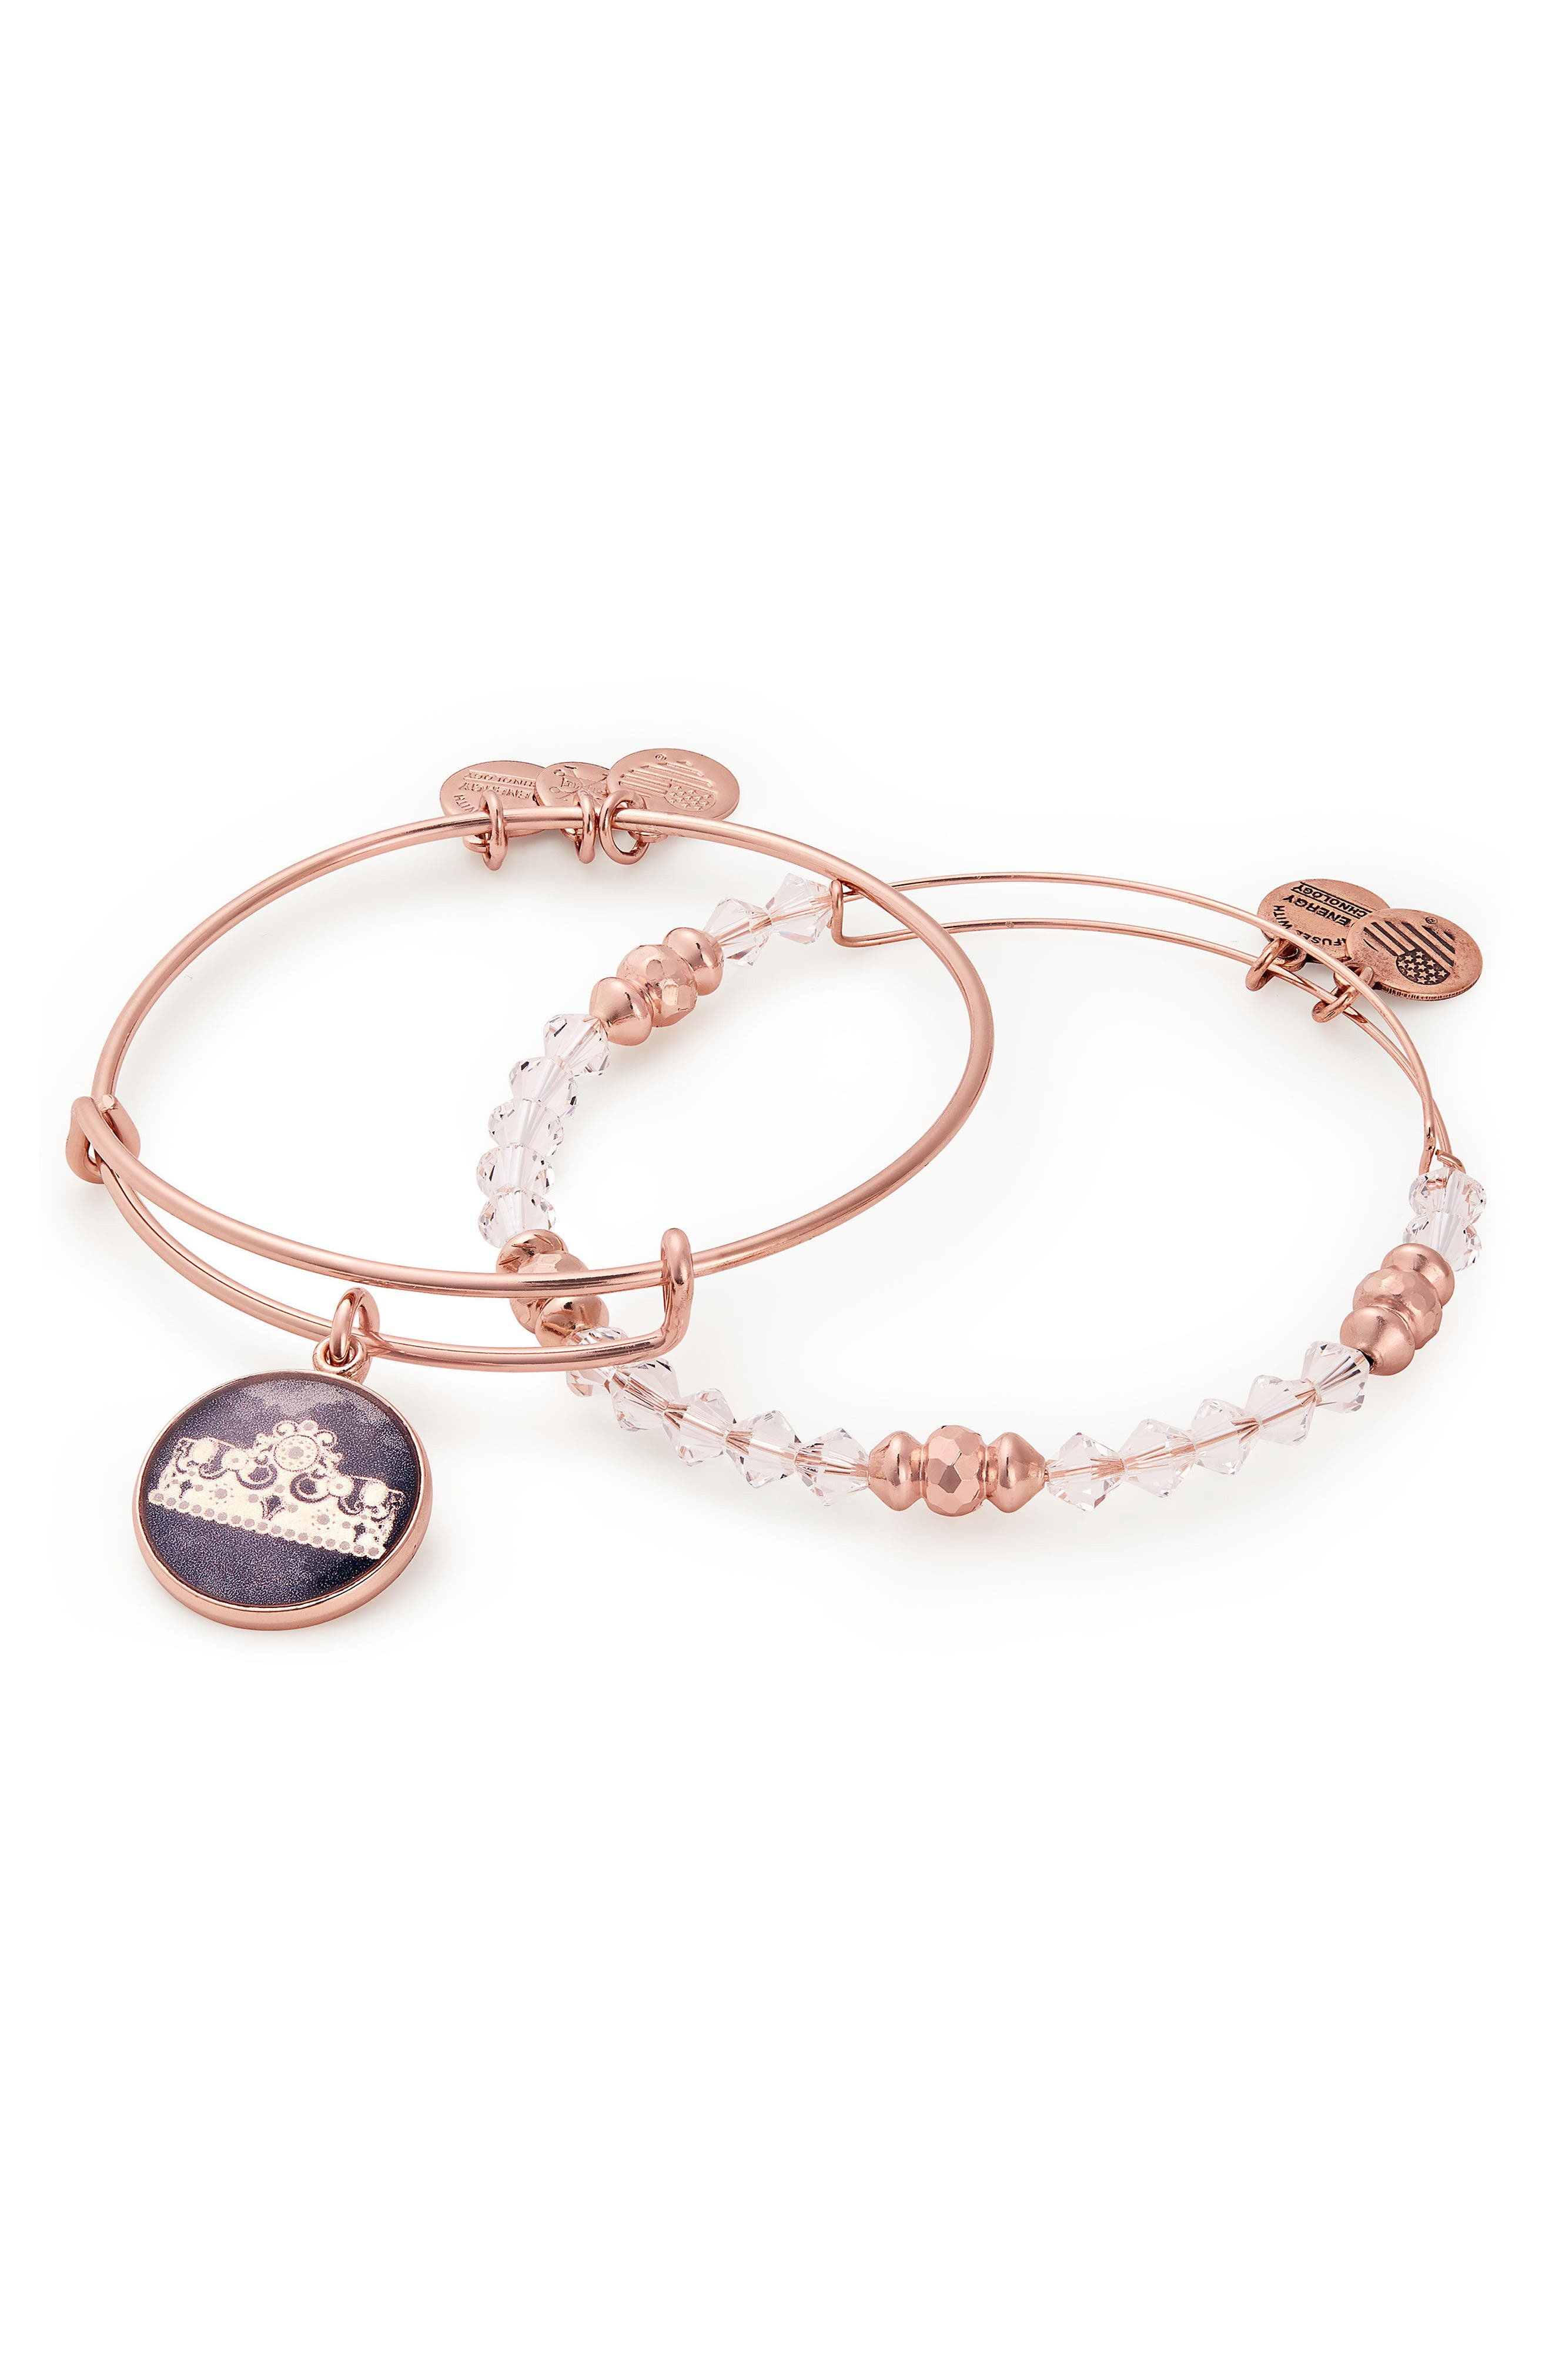 Queen's Crown Set of 2 Adjustable Wire Bangles,                             Main thumbnail 1, color,                             689